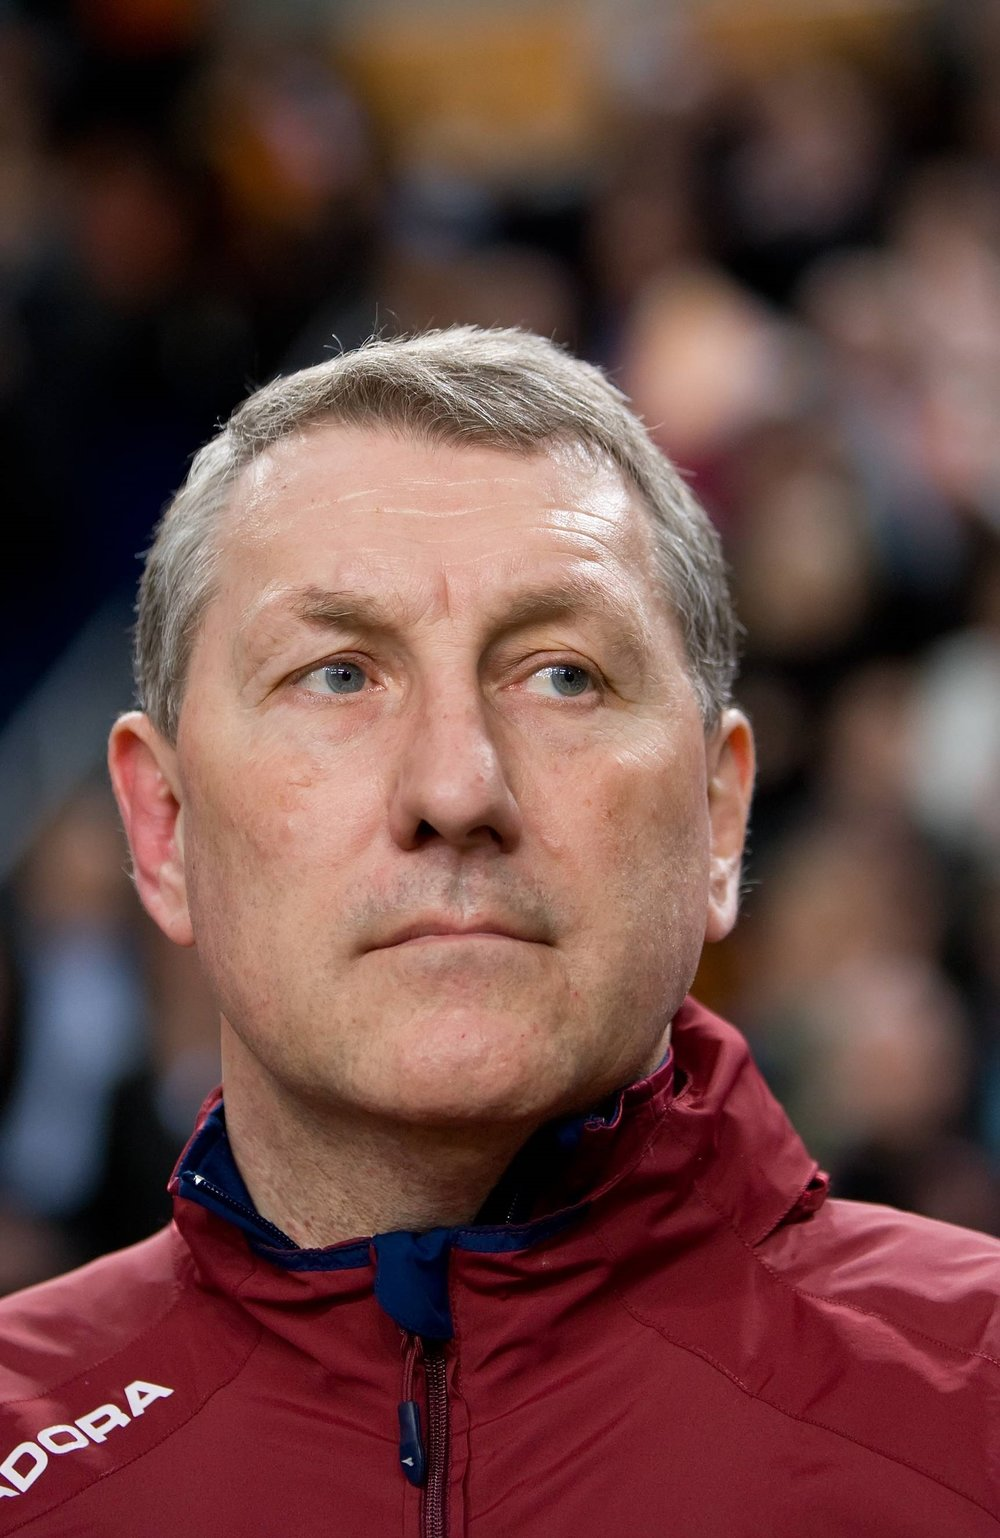 Terry Butcher | Football Player & Manager. Rangers FC legend and former Club Captain. England international footballer (77 caps) and captain. Scottish Football Hall of Fame member